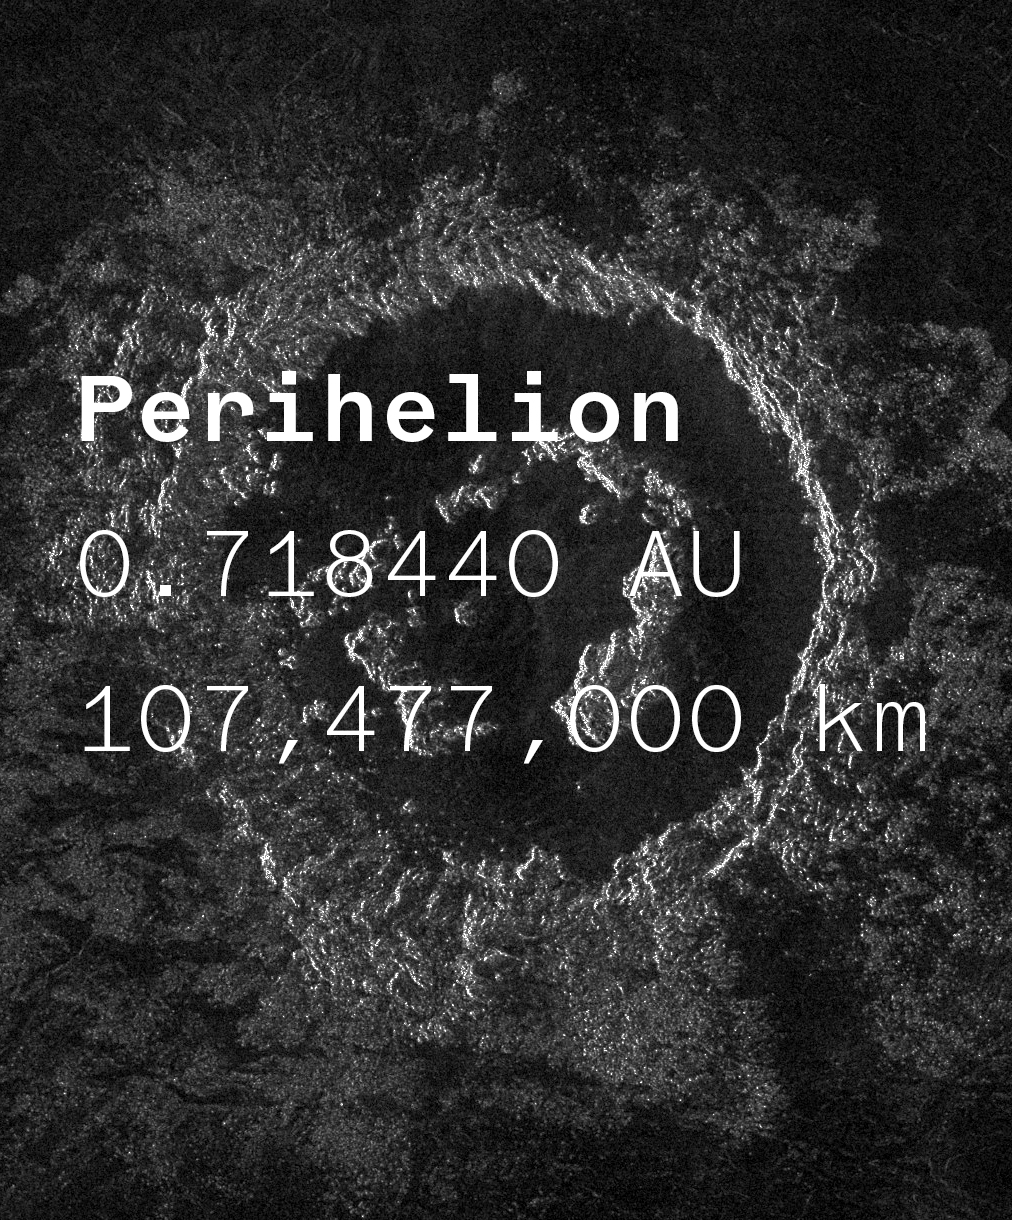 A mysterious image of the surface of Venus' moon, representing a monospaced typeface names Coordinates.